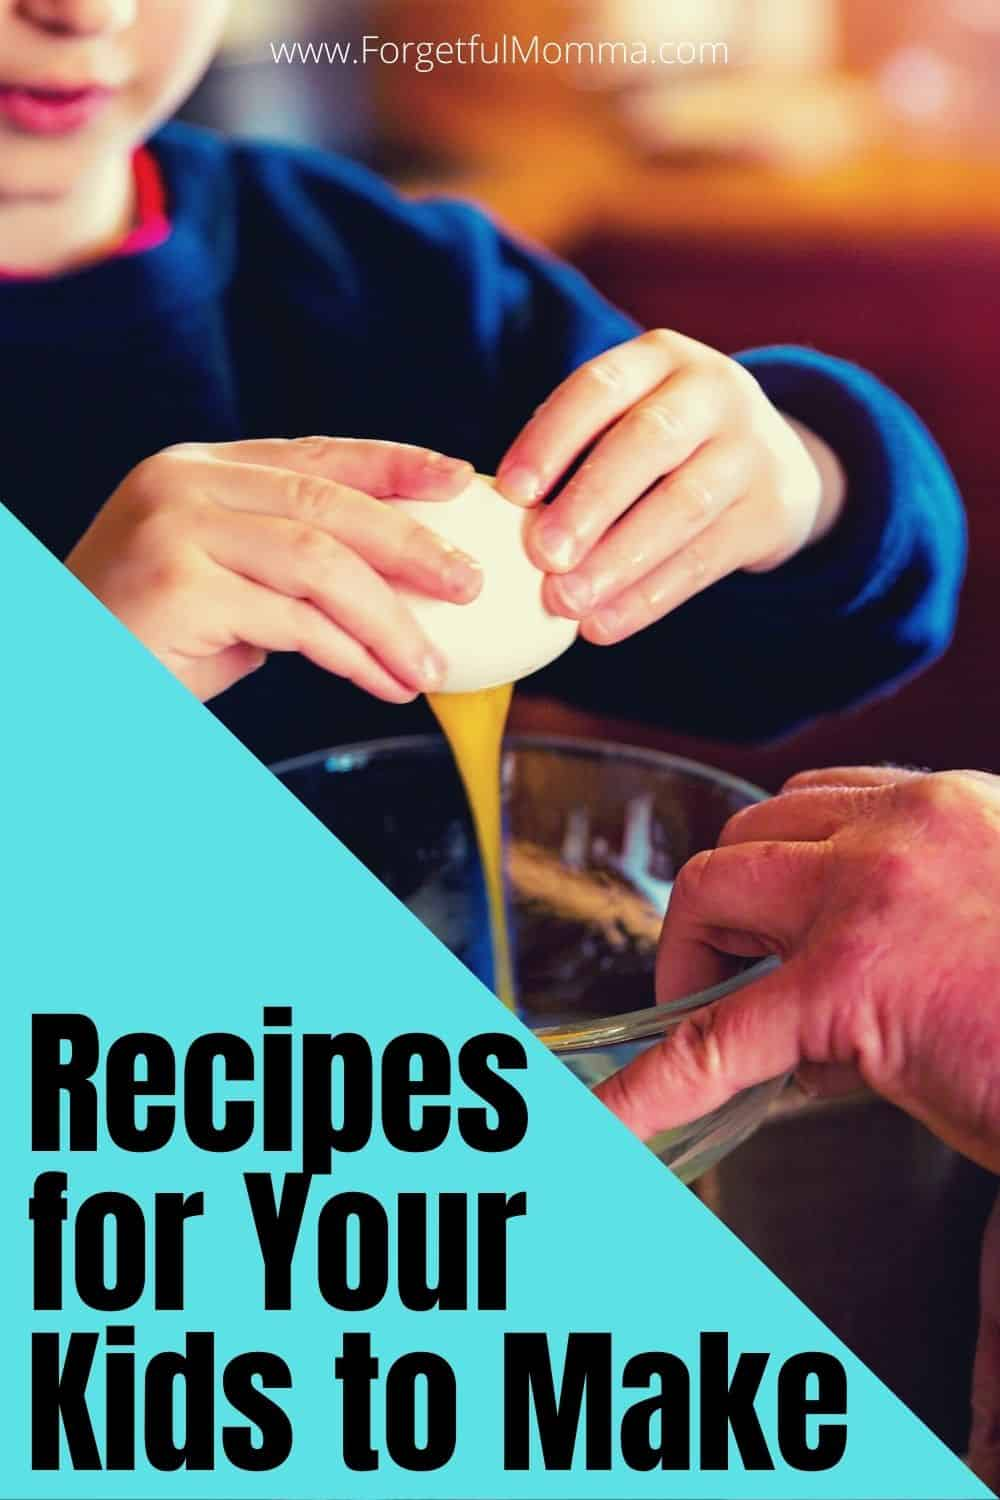 Recipes for Your Kids to Make